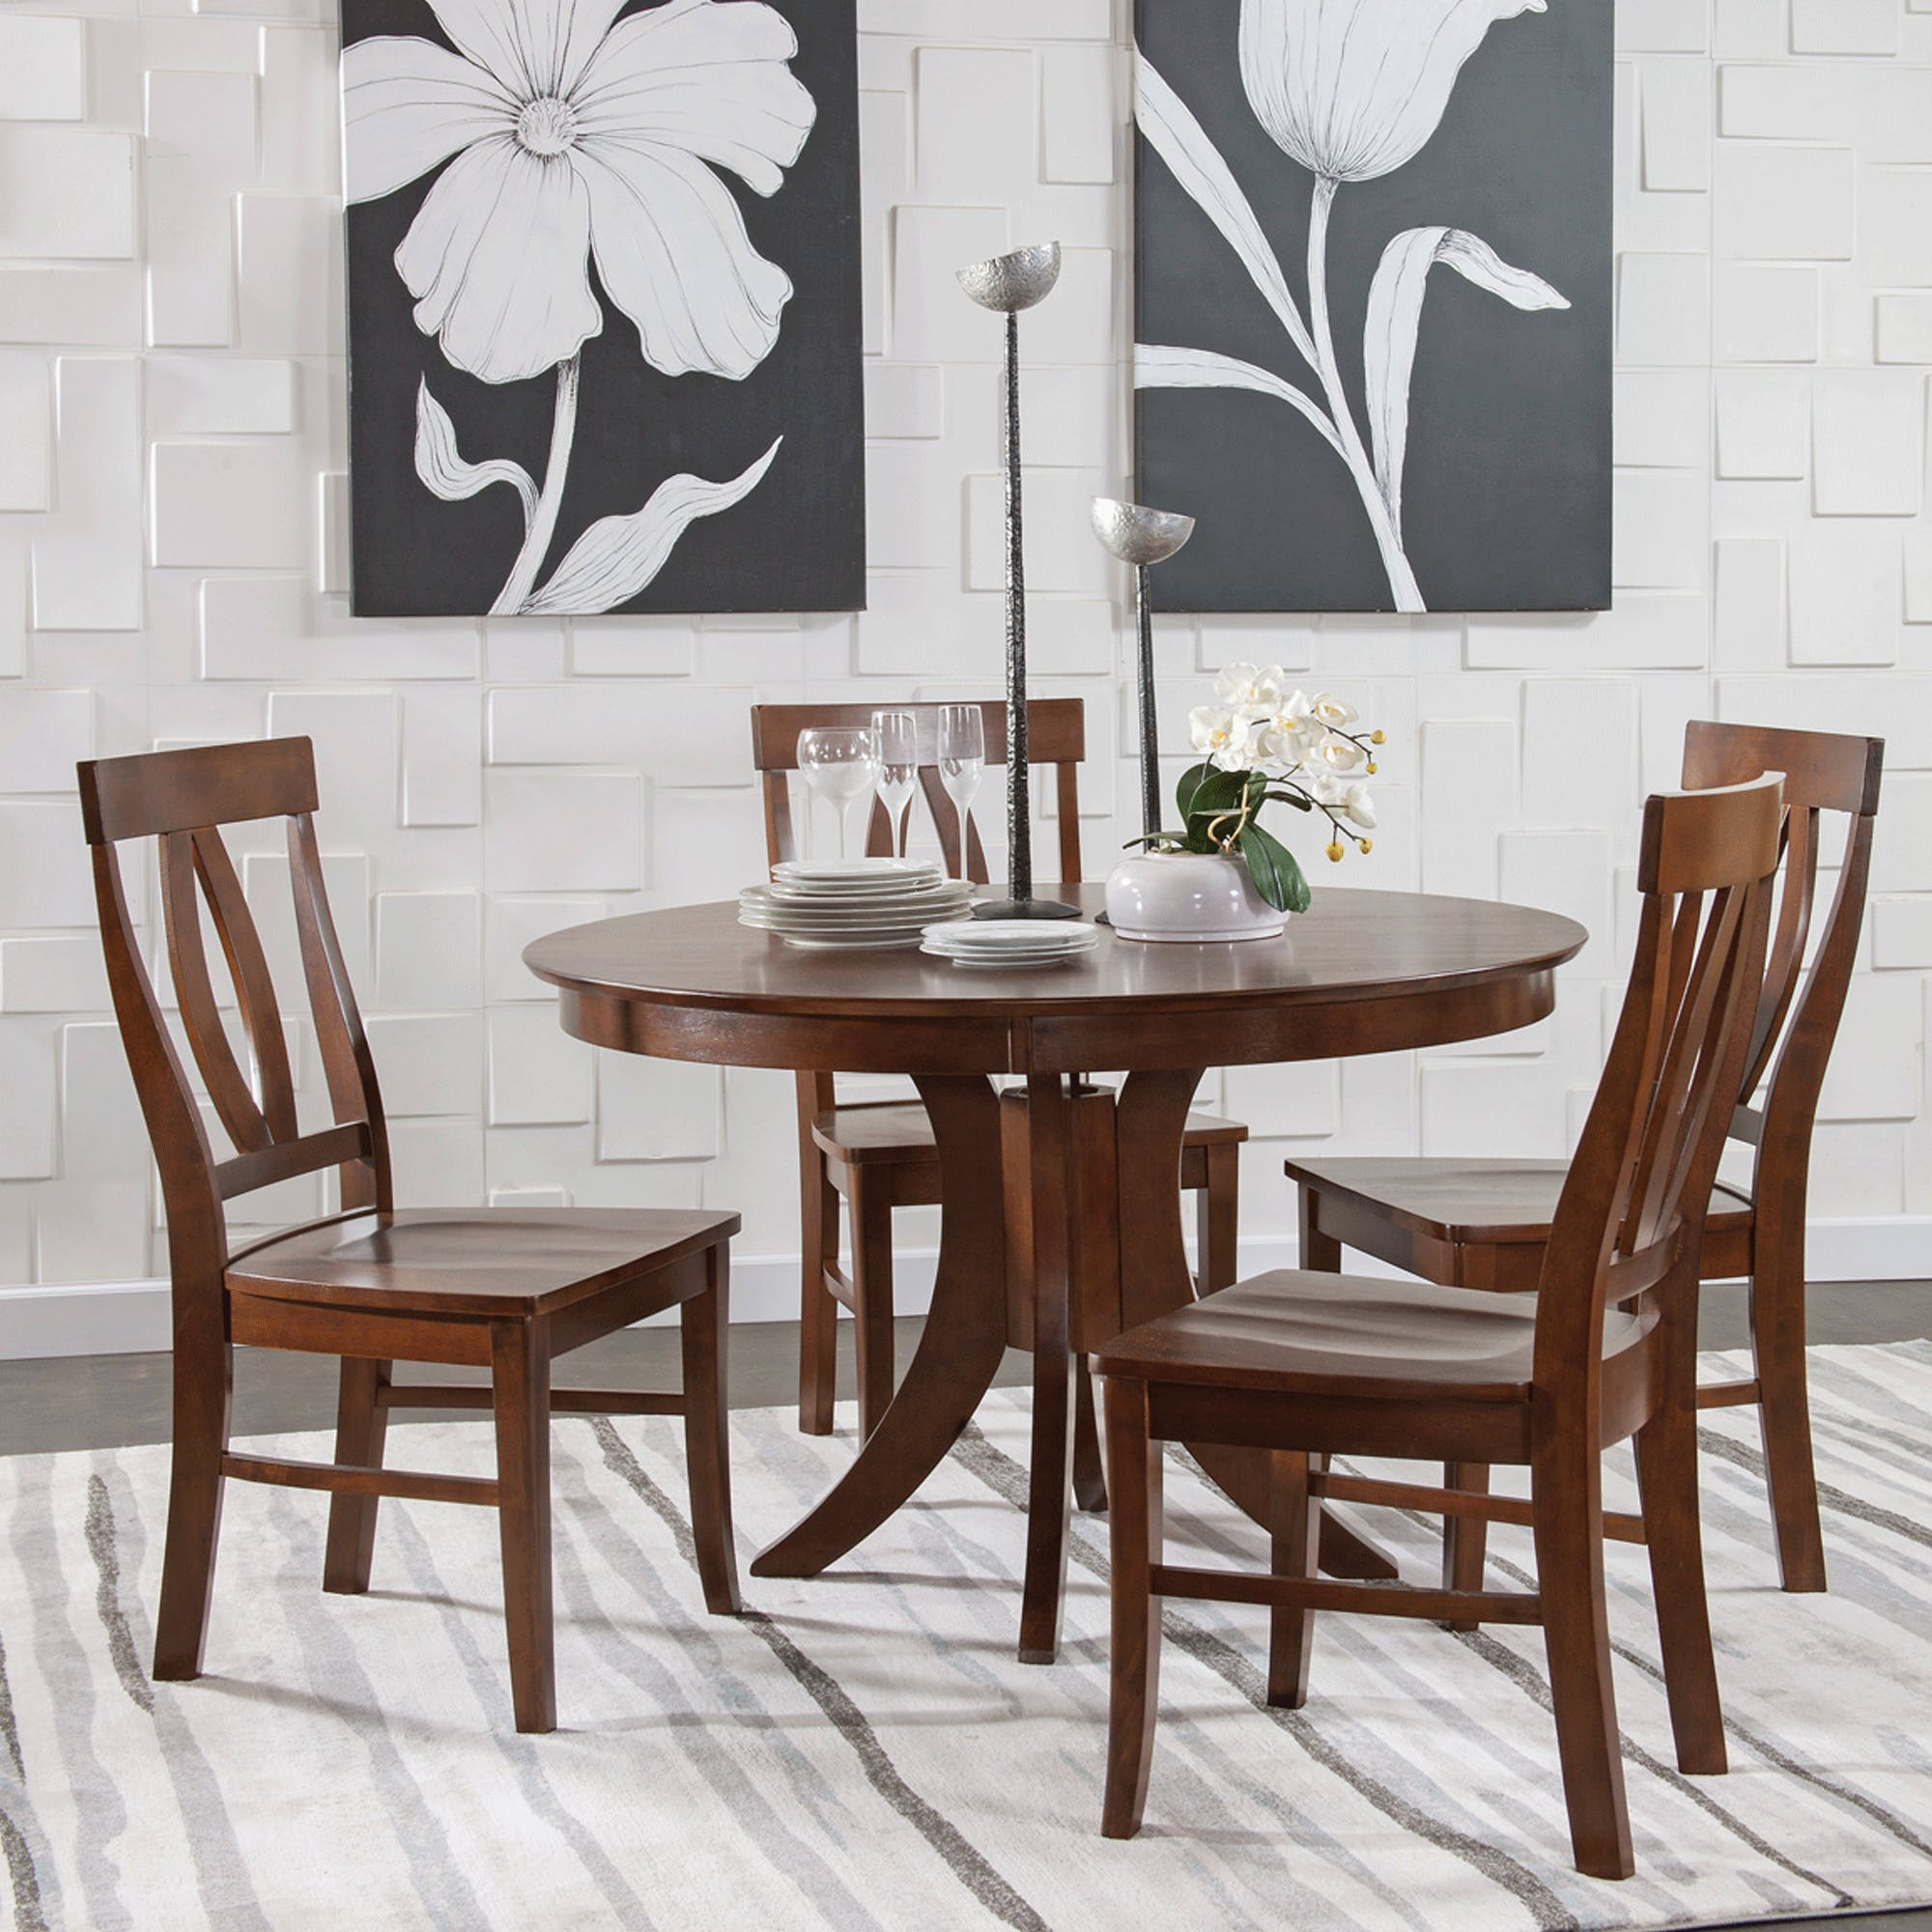 John 4 Piece Dining Sets Inside Current Cosmopolitan Espresso 5 Piece Set – Pub Table With 4 Verona Stools (Gallery 7 of 20)